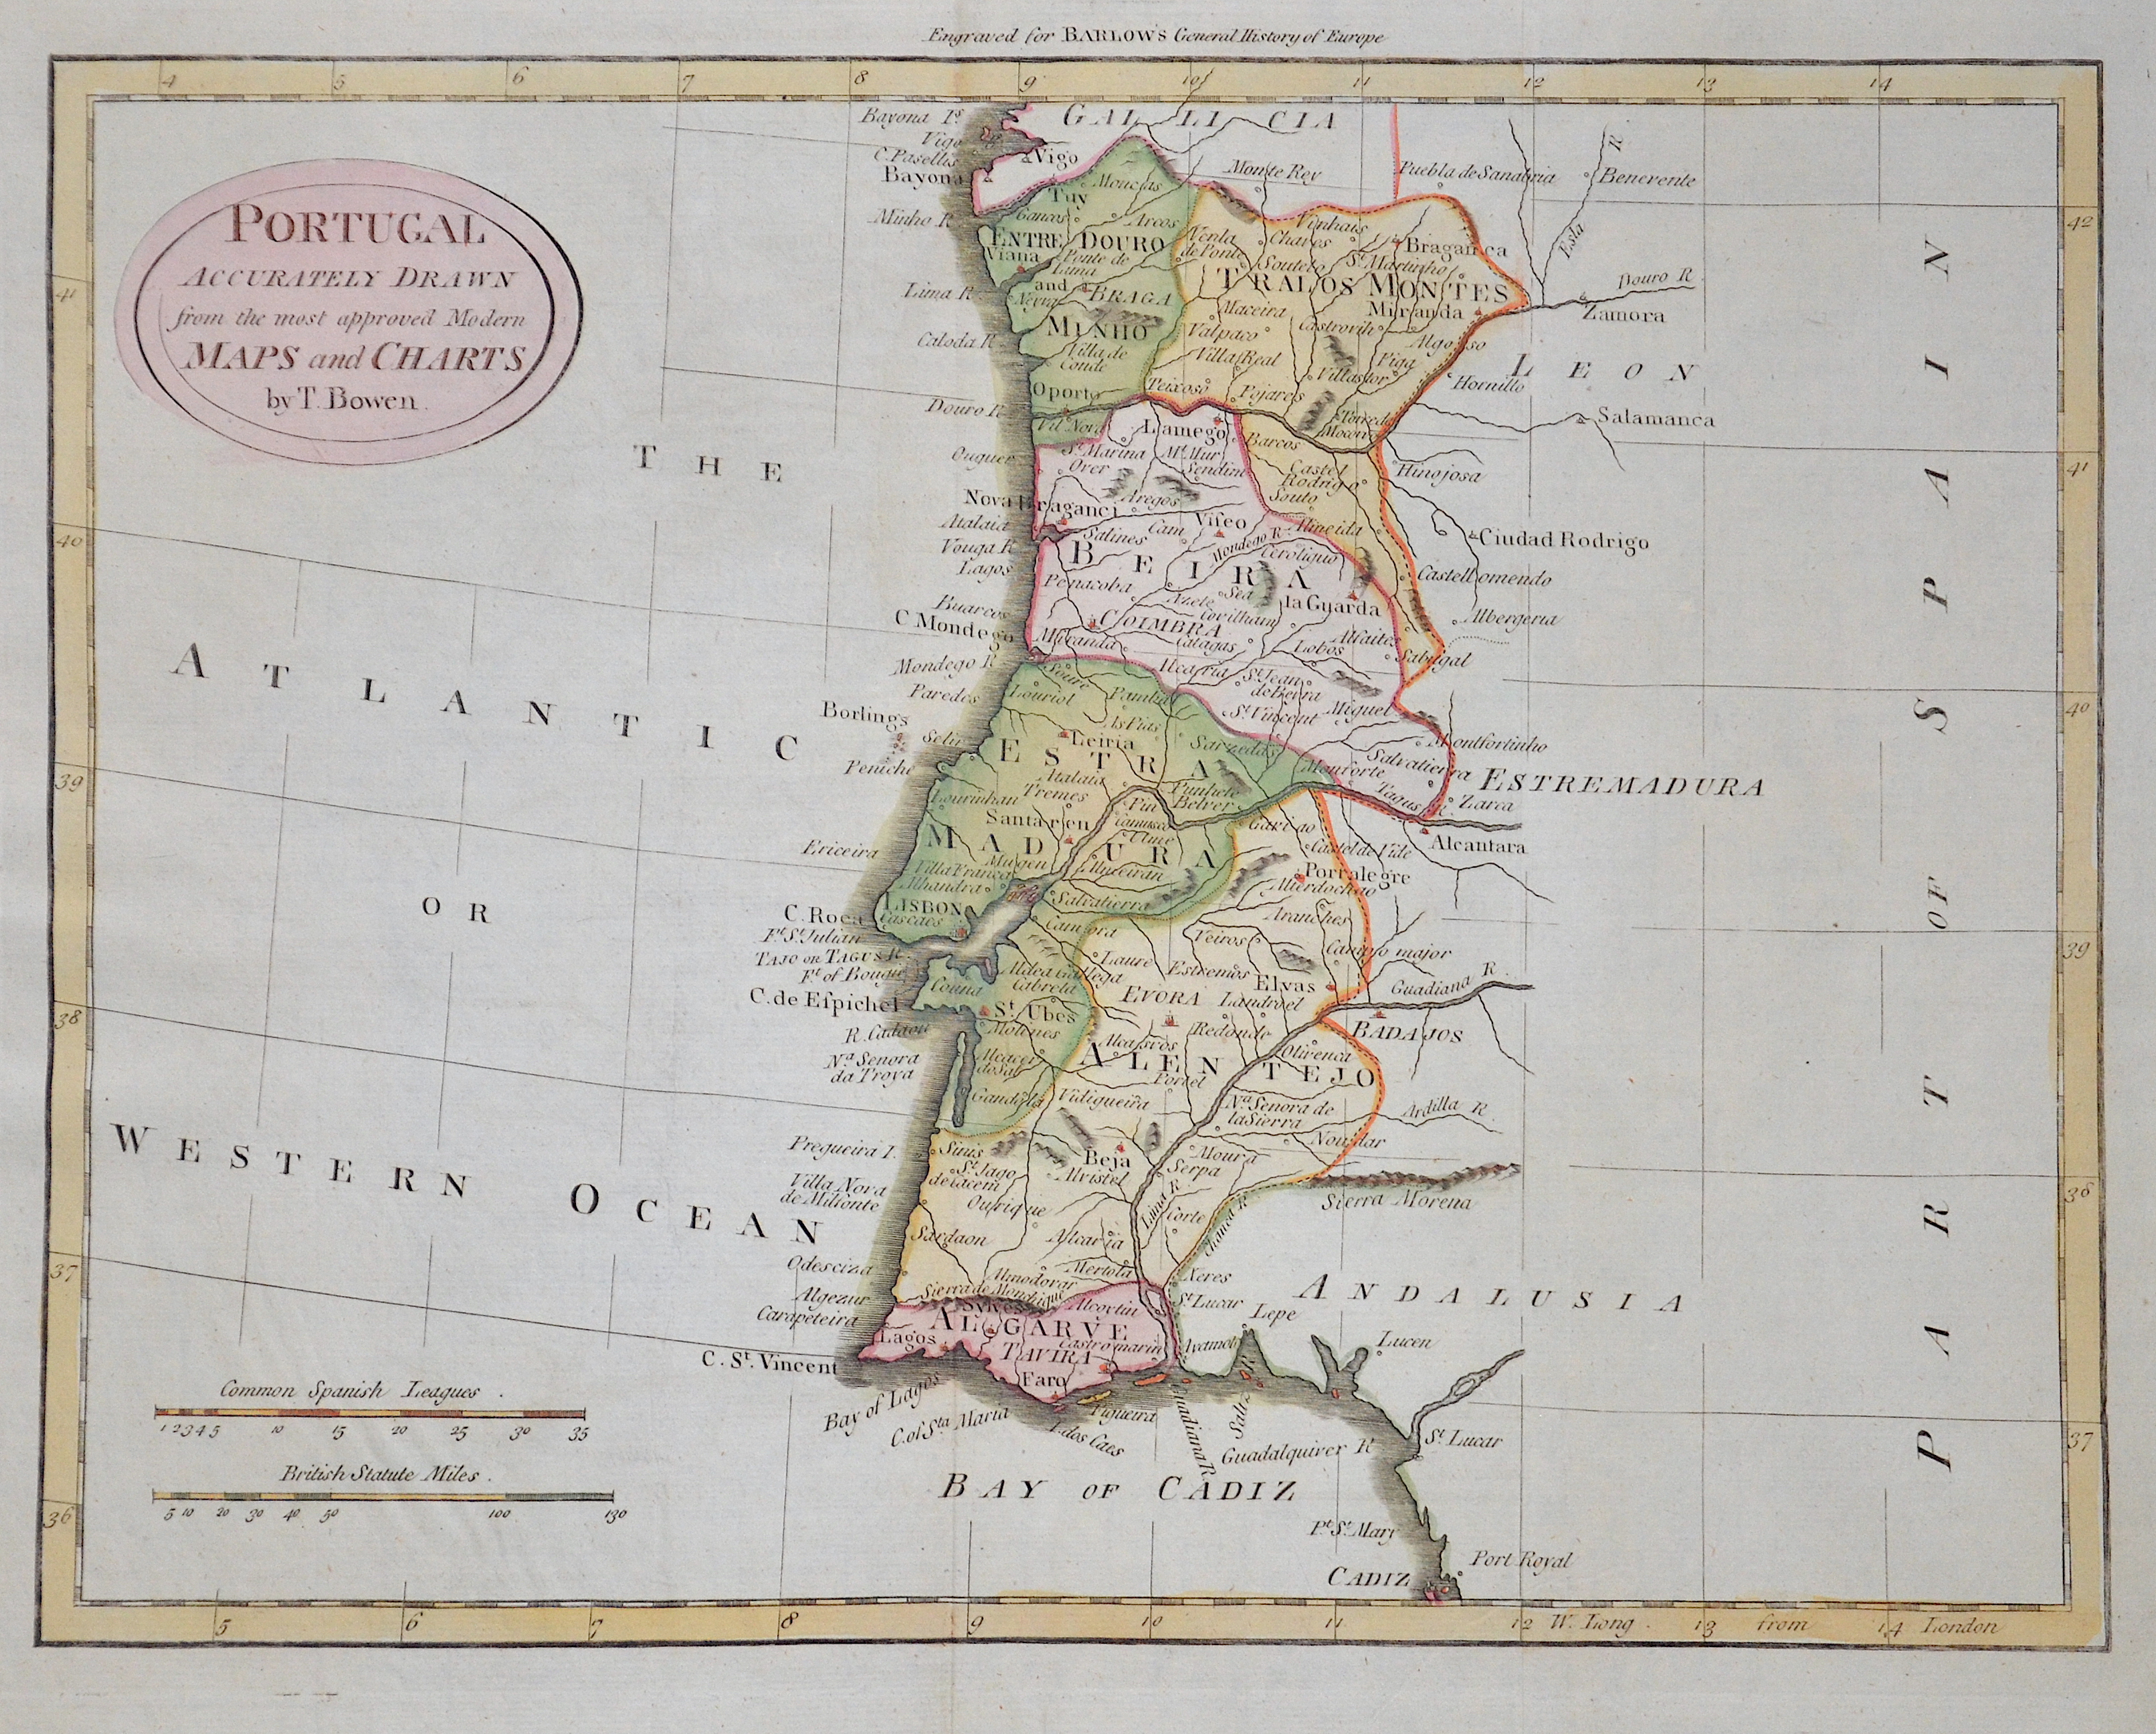 Bowen Thomas Portugal Accurately drawn from the most approved Modern Maps and Charts by T. Bowen.